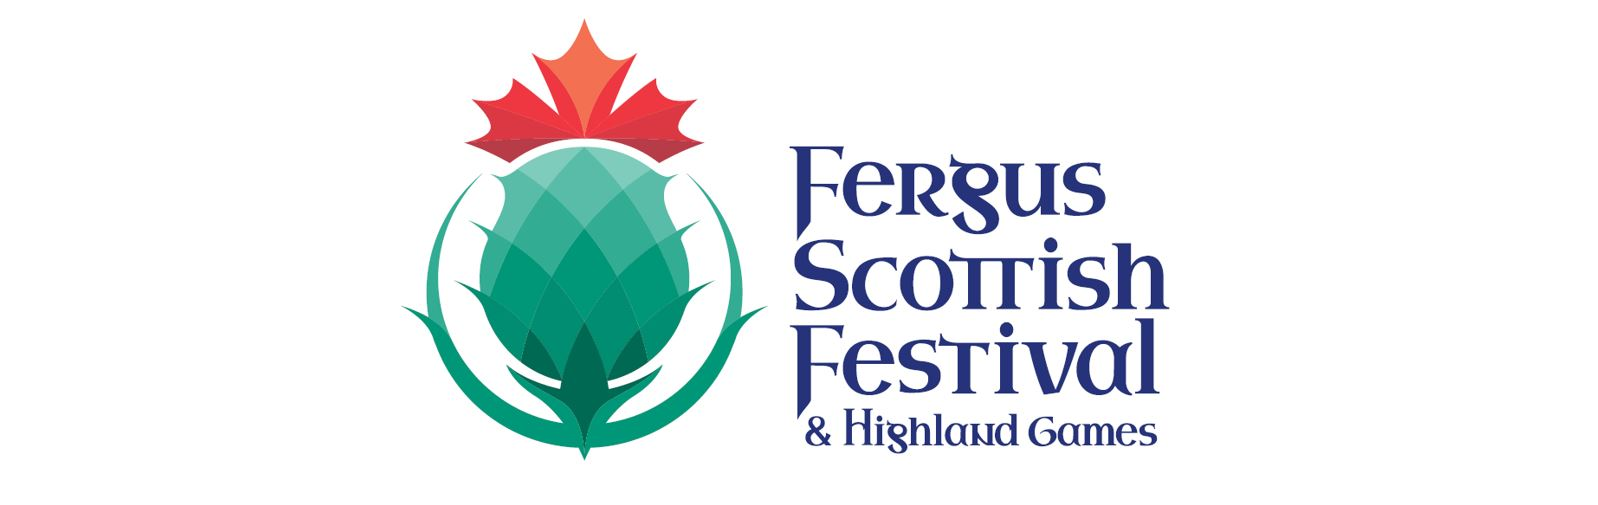 Find tickets from Fergus Scottish Festival